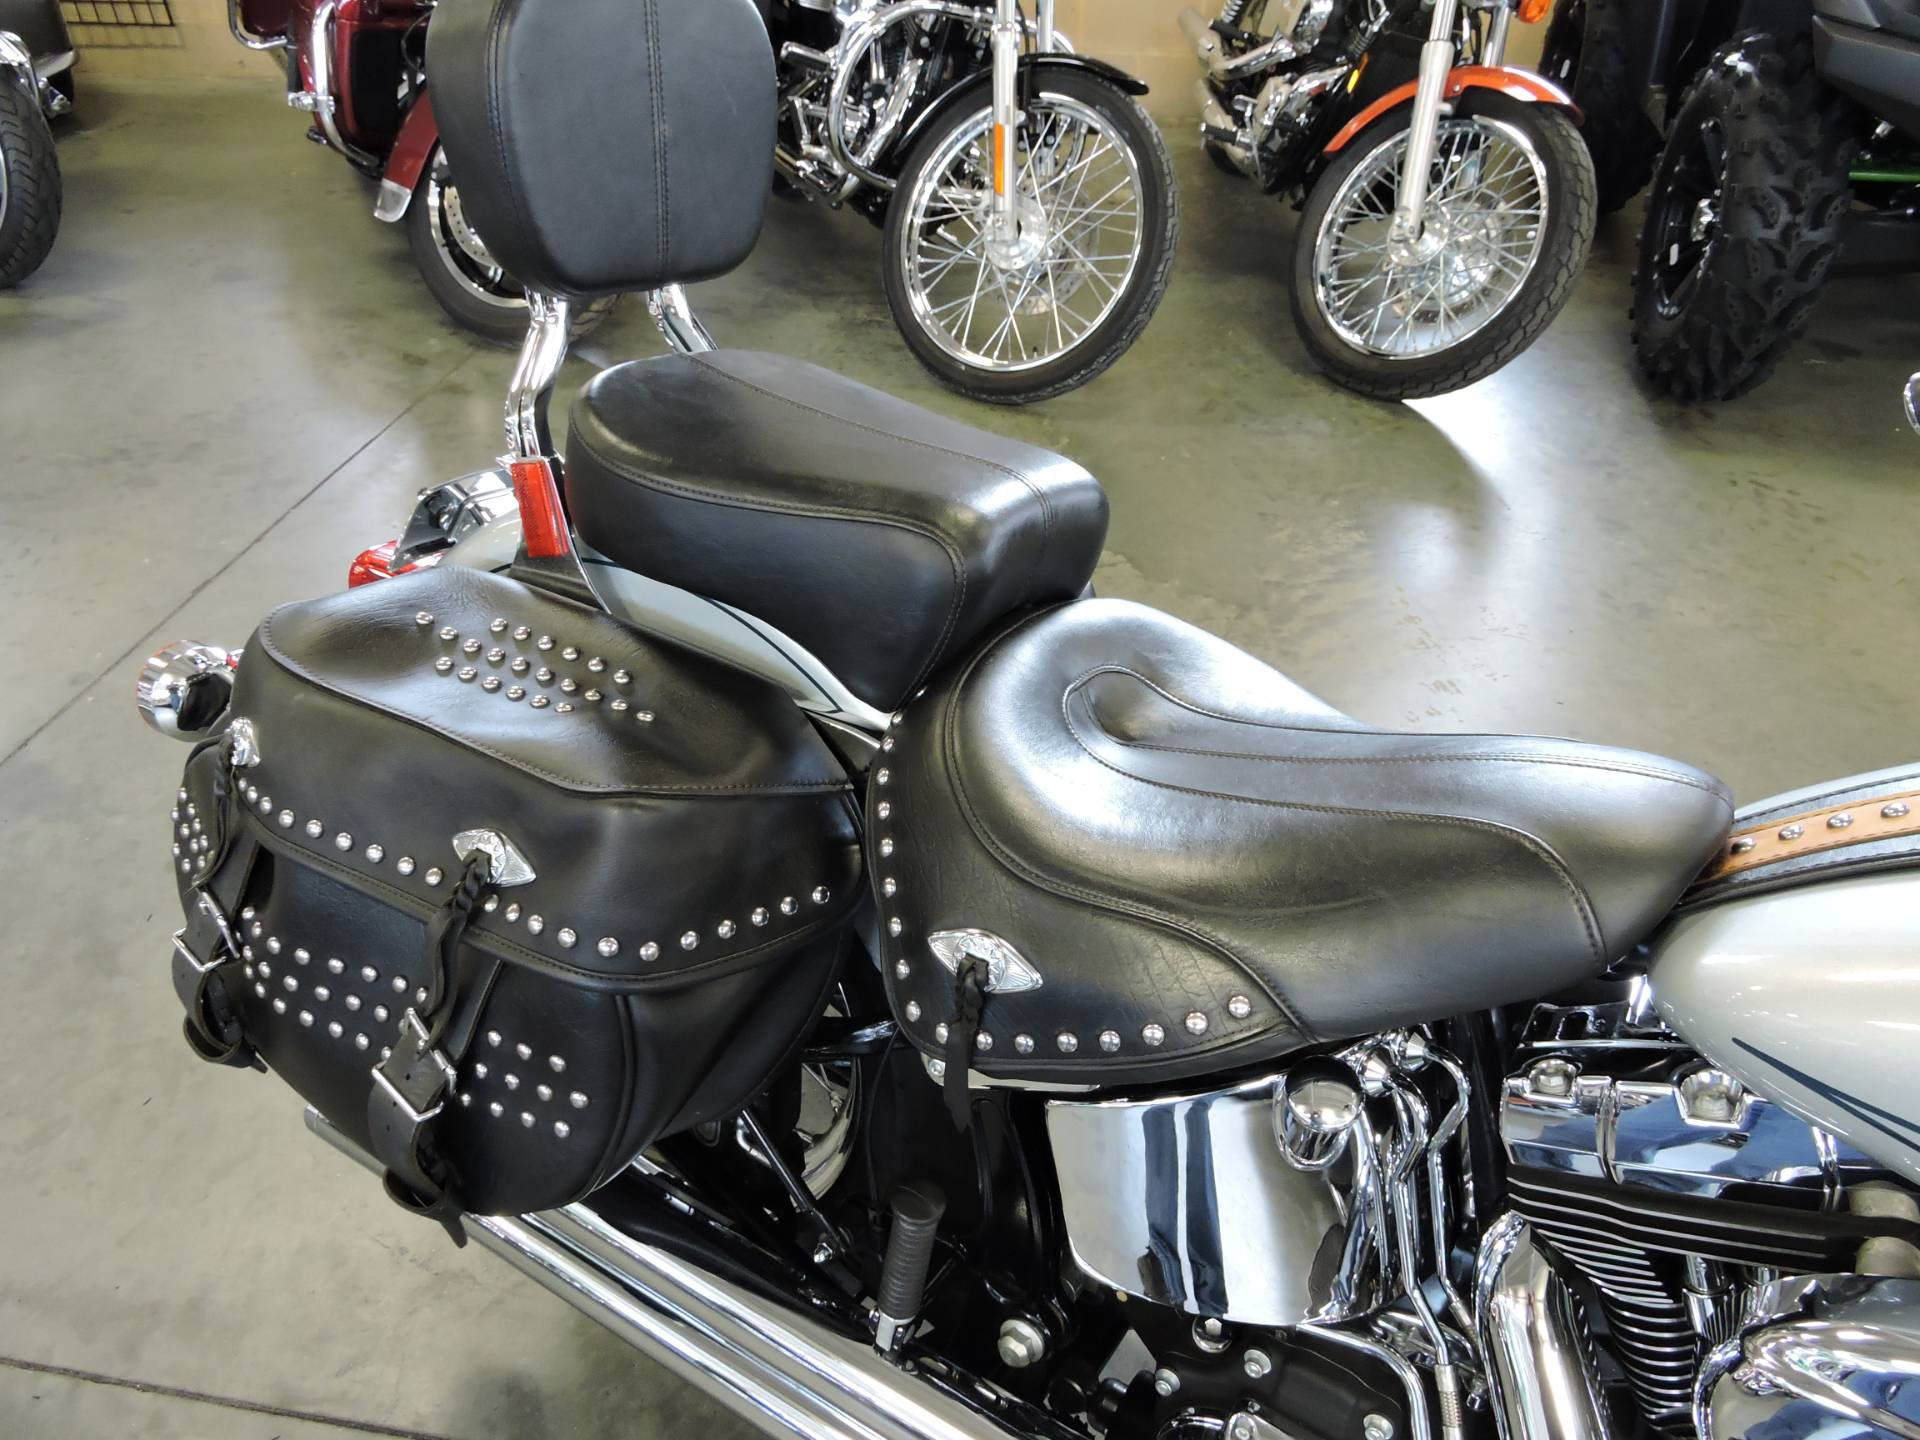 used 2010 harley davidson heritage softail classic. Black Bedroom Furniture Sets. Home Design Ideas